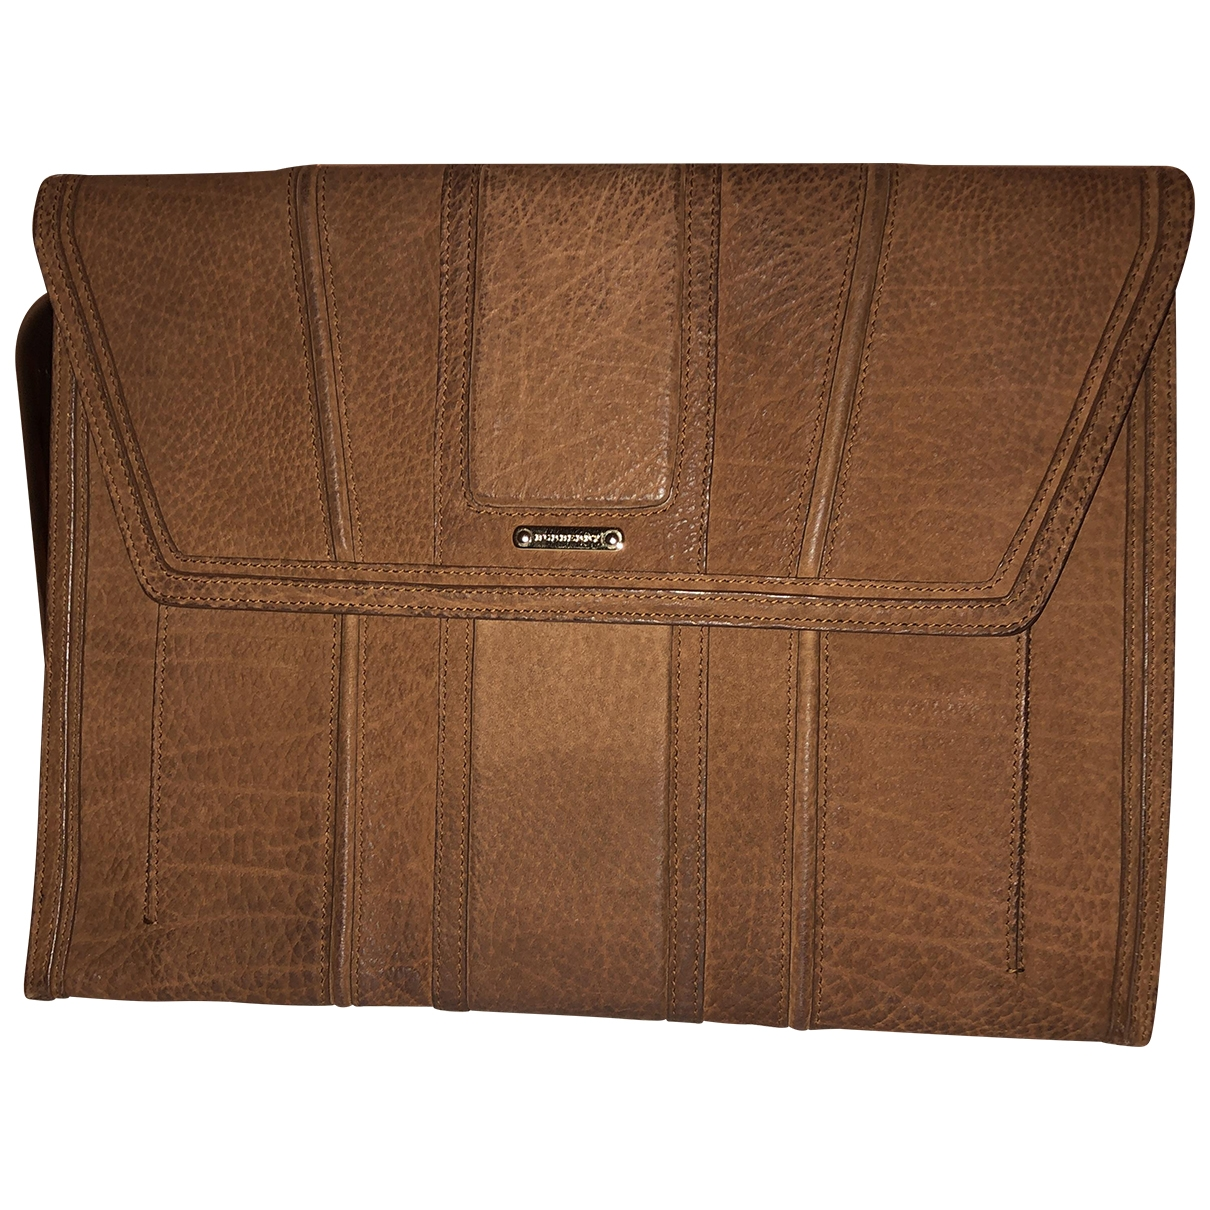 Burberry \N Clutch in  Braun Veloursleder